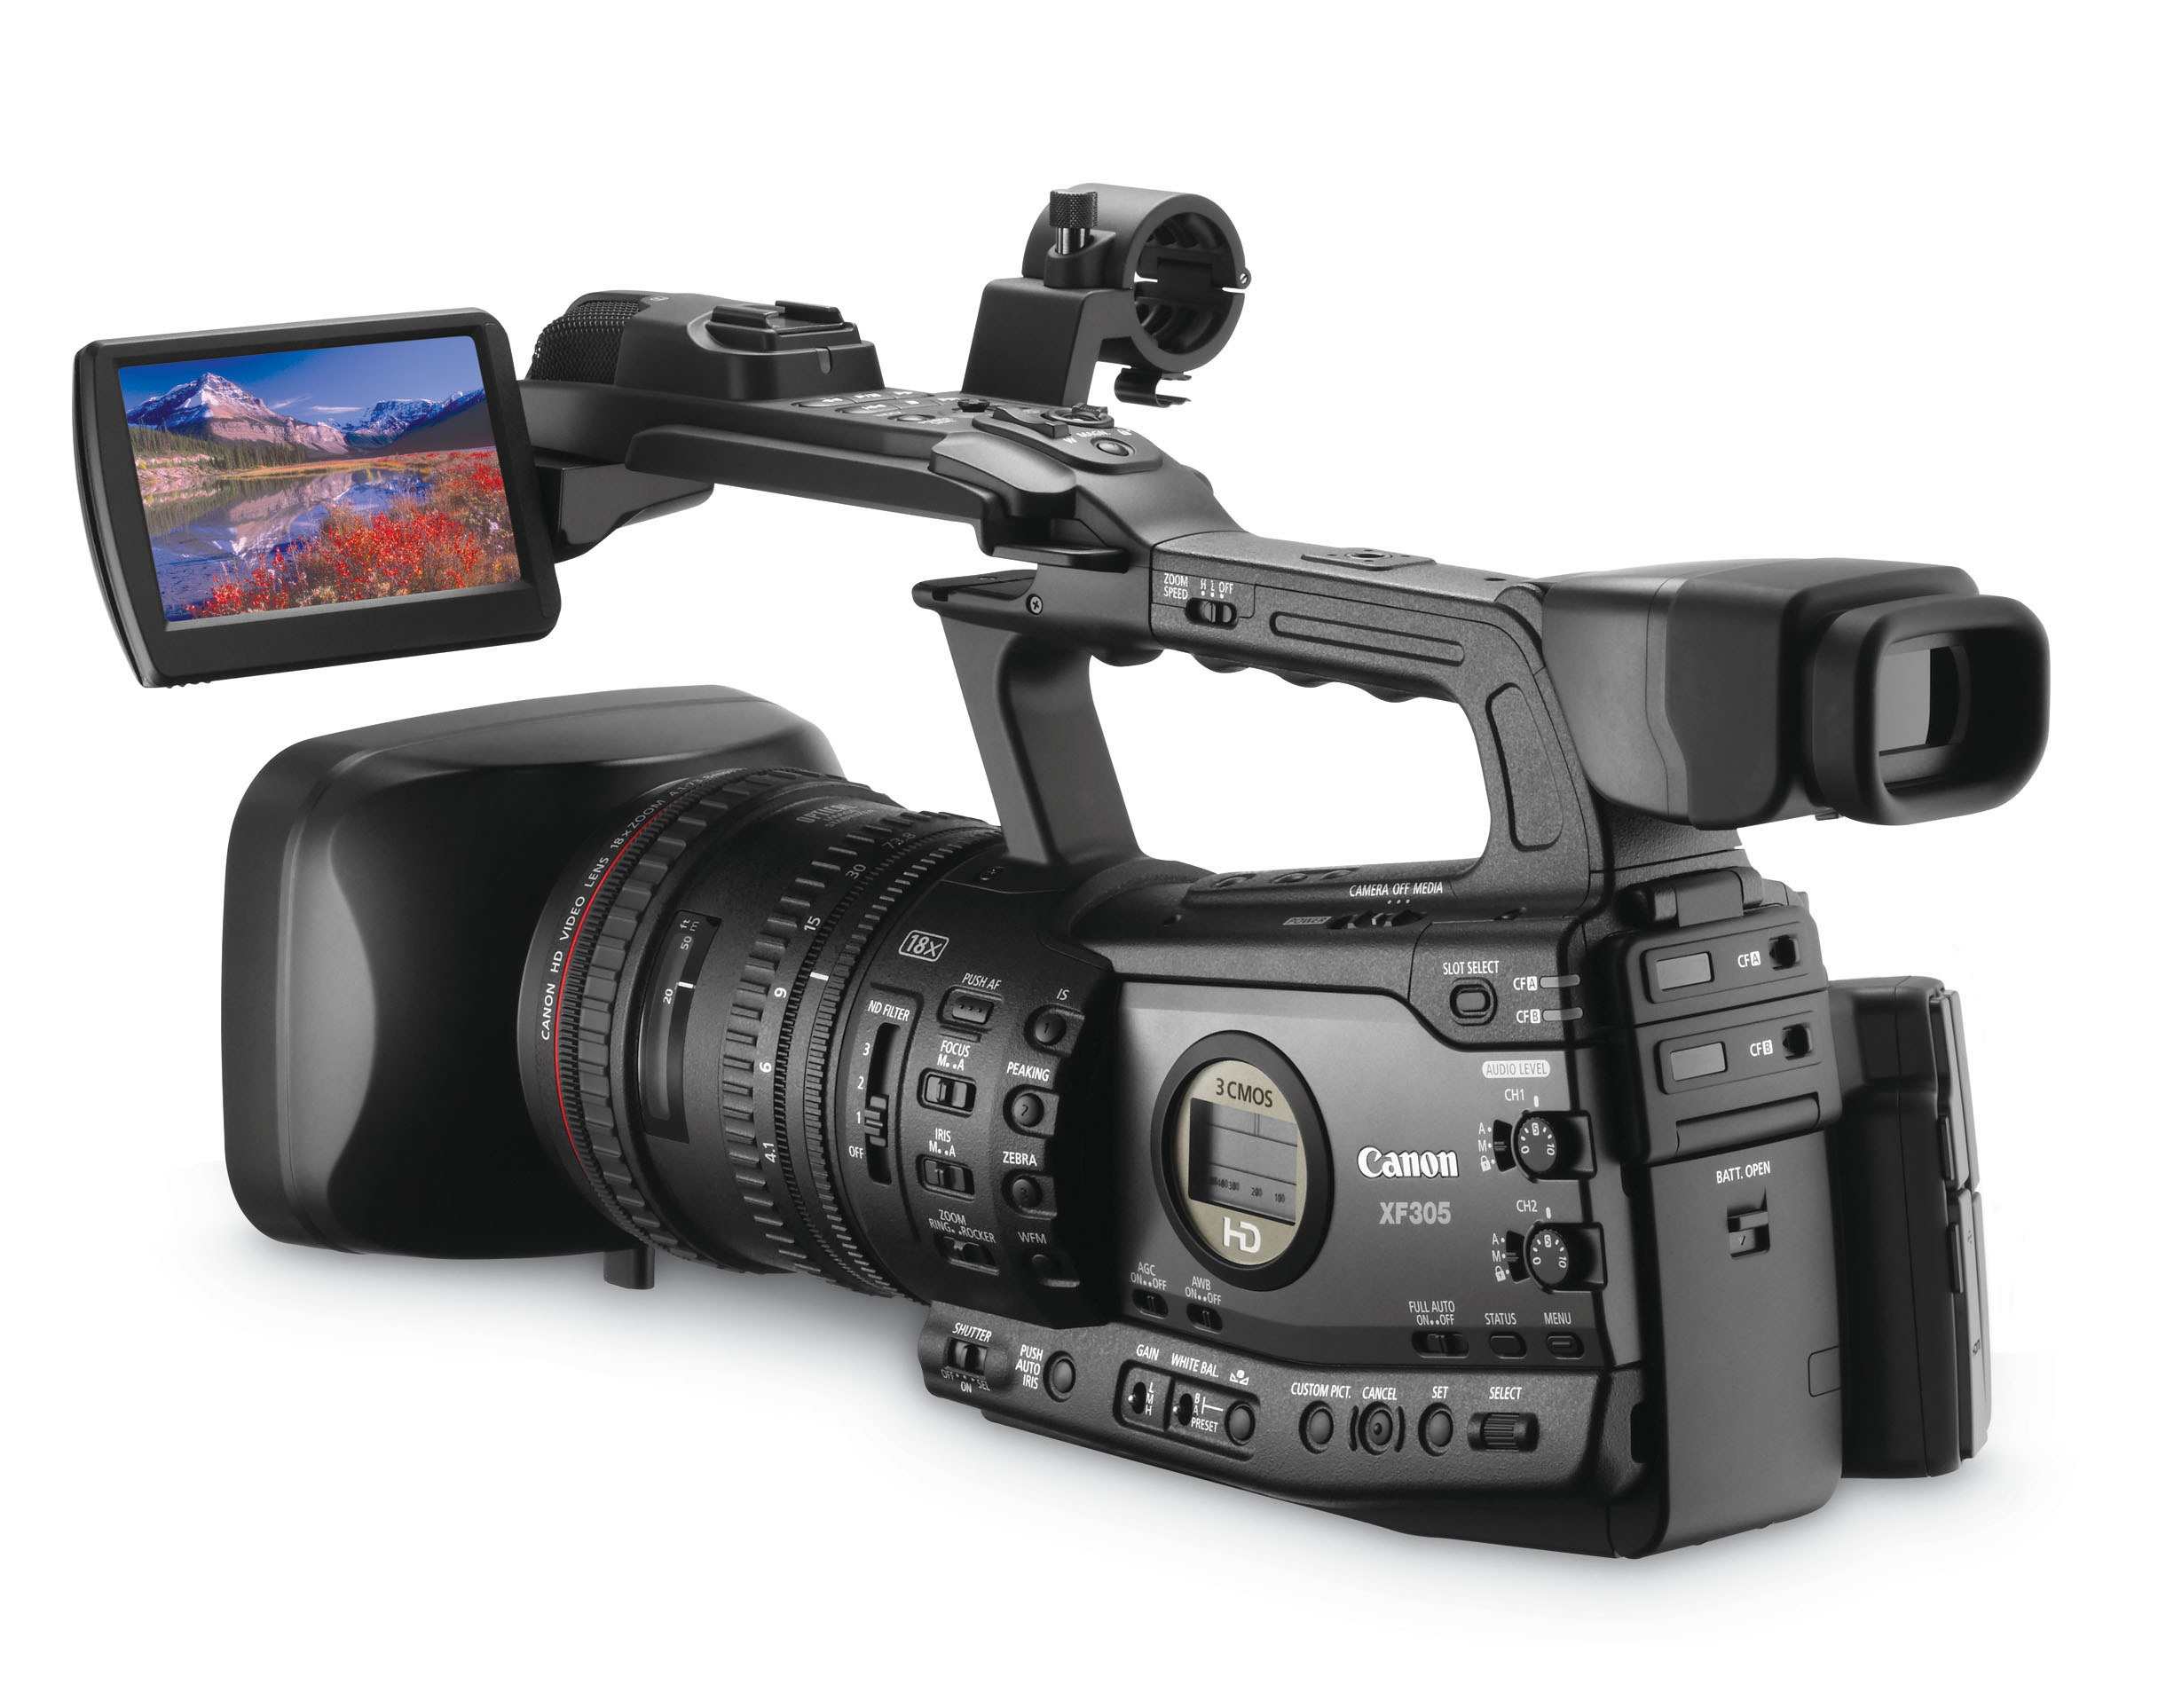 canon xf305 and xf300 professional hd camcorders. Black Bedroom Furniture Sets. Home Design Ideas